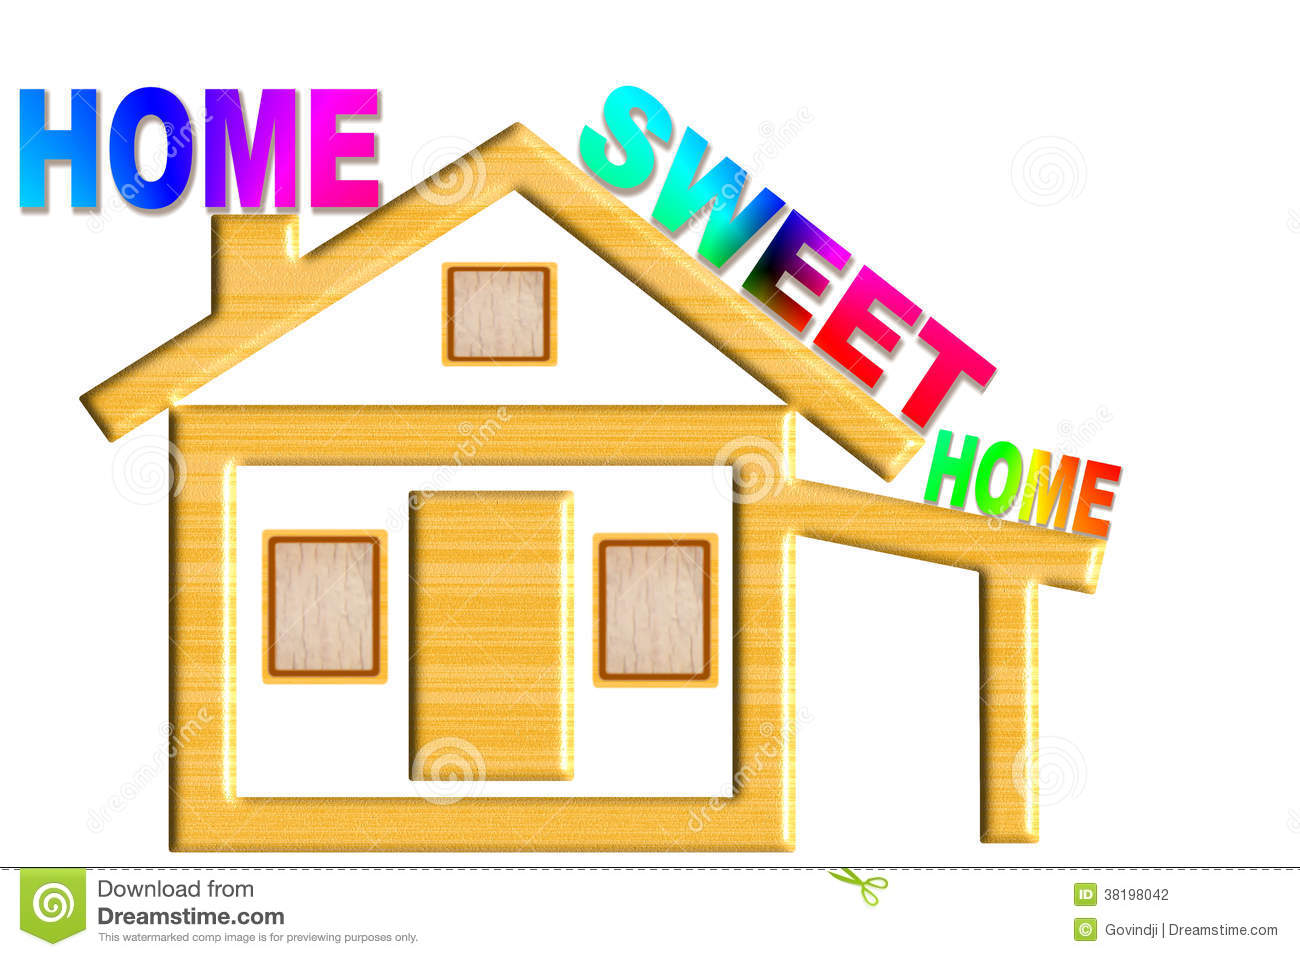 Home sweet home words with home icon design stock for Home sweet home designs